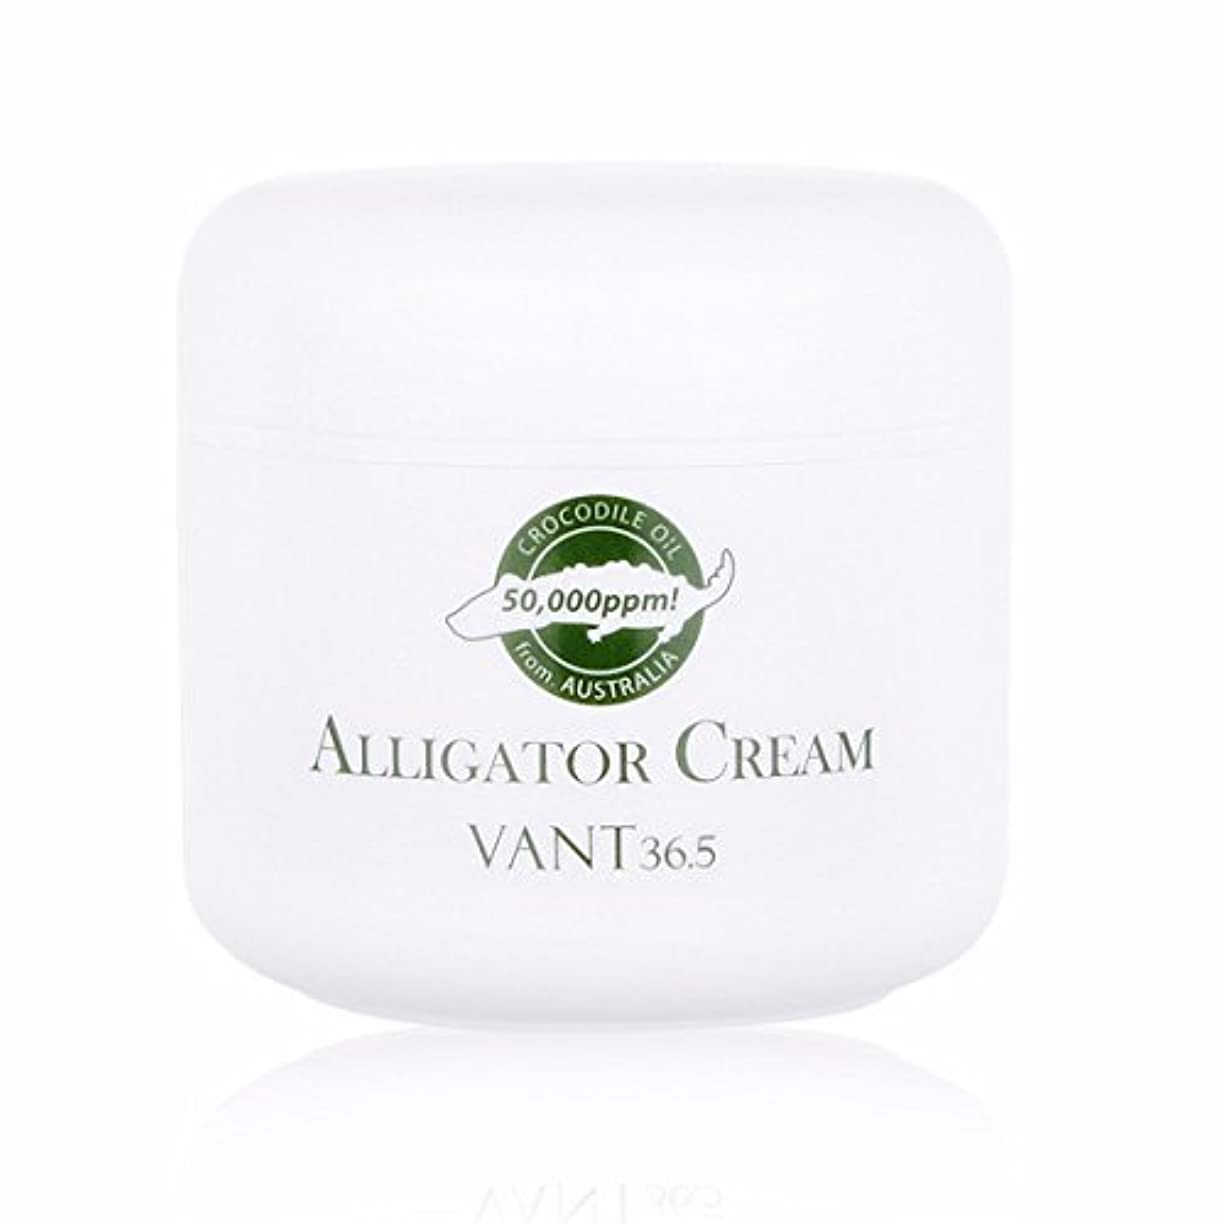 段落三含めるバント36.5 ワニクリーム50ml[並行輸入品] / VANT 36.5 Alligator Cream 50ml (1.69fl.oz.) for Nourishing, Moisturizing cream